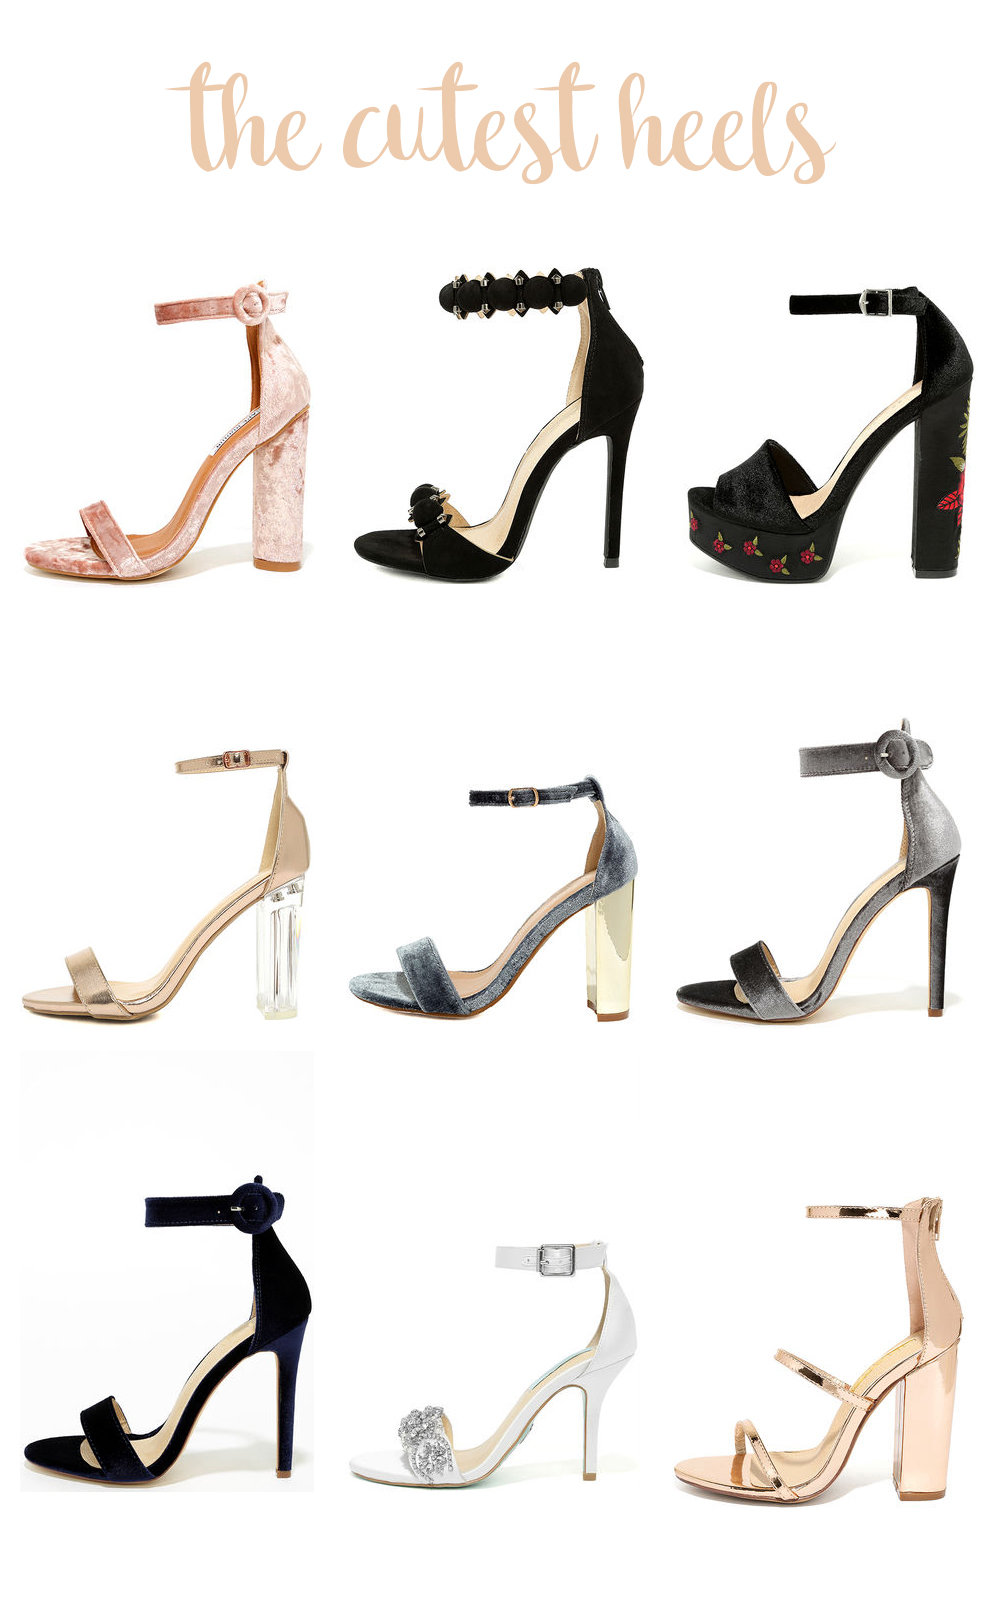 The Cutest Heels